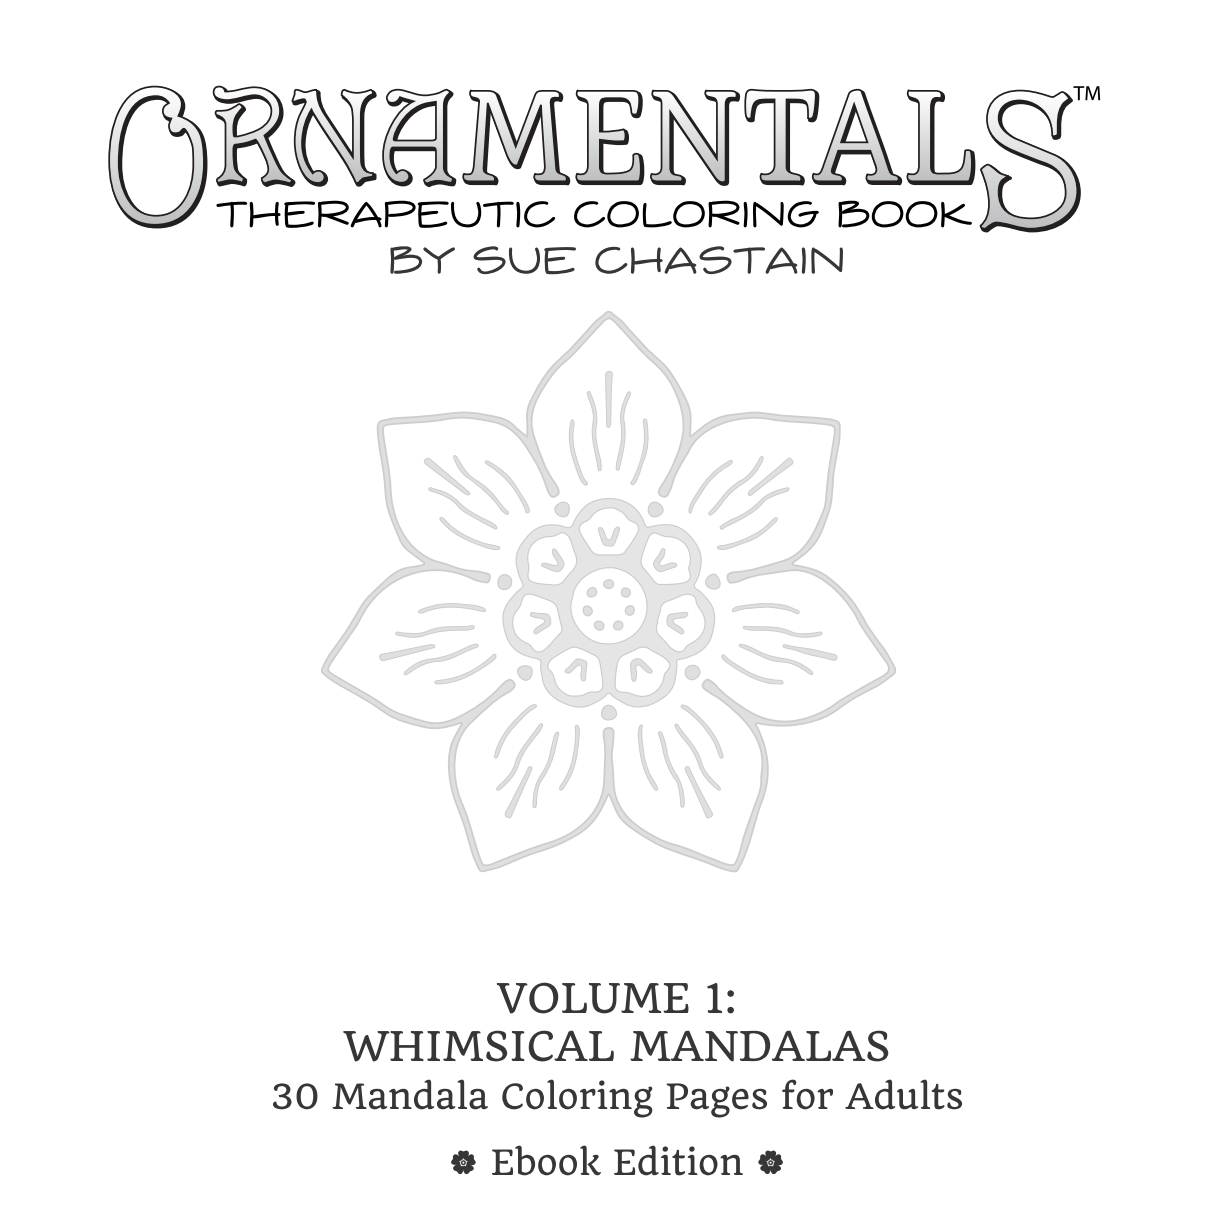 The coloring book e book - Ebook Edition Of Ornamentals Volume 1 Whimsical Mandalas